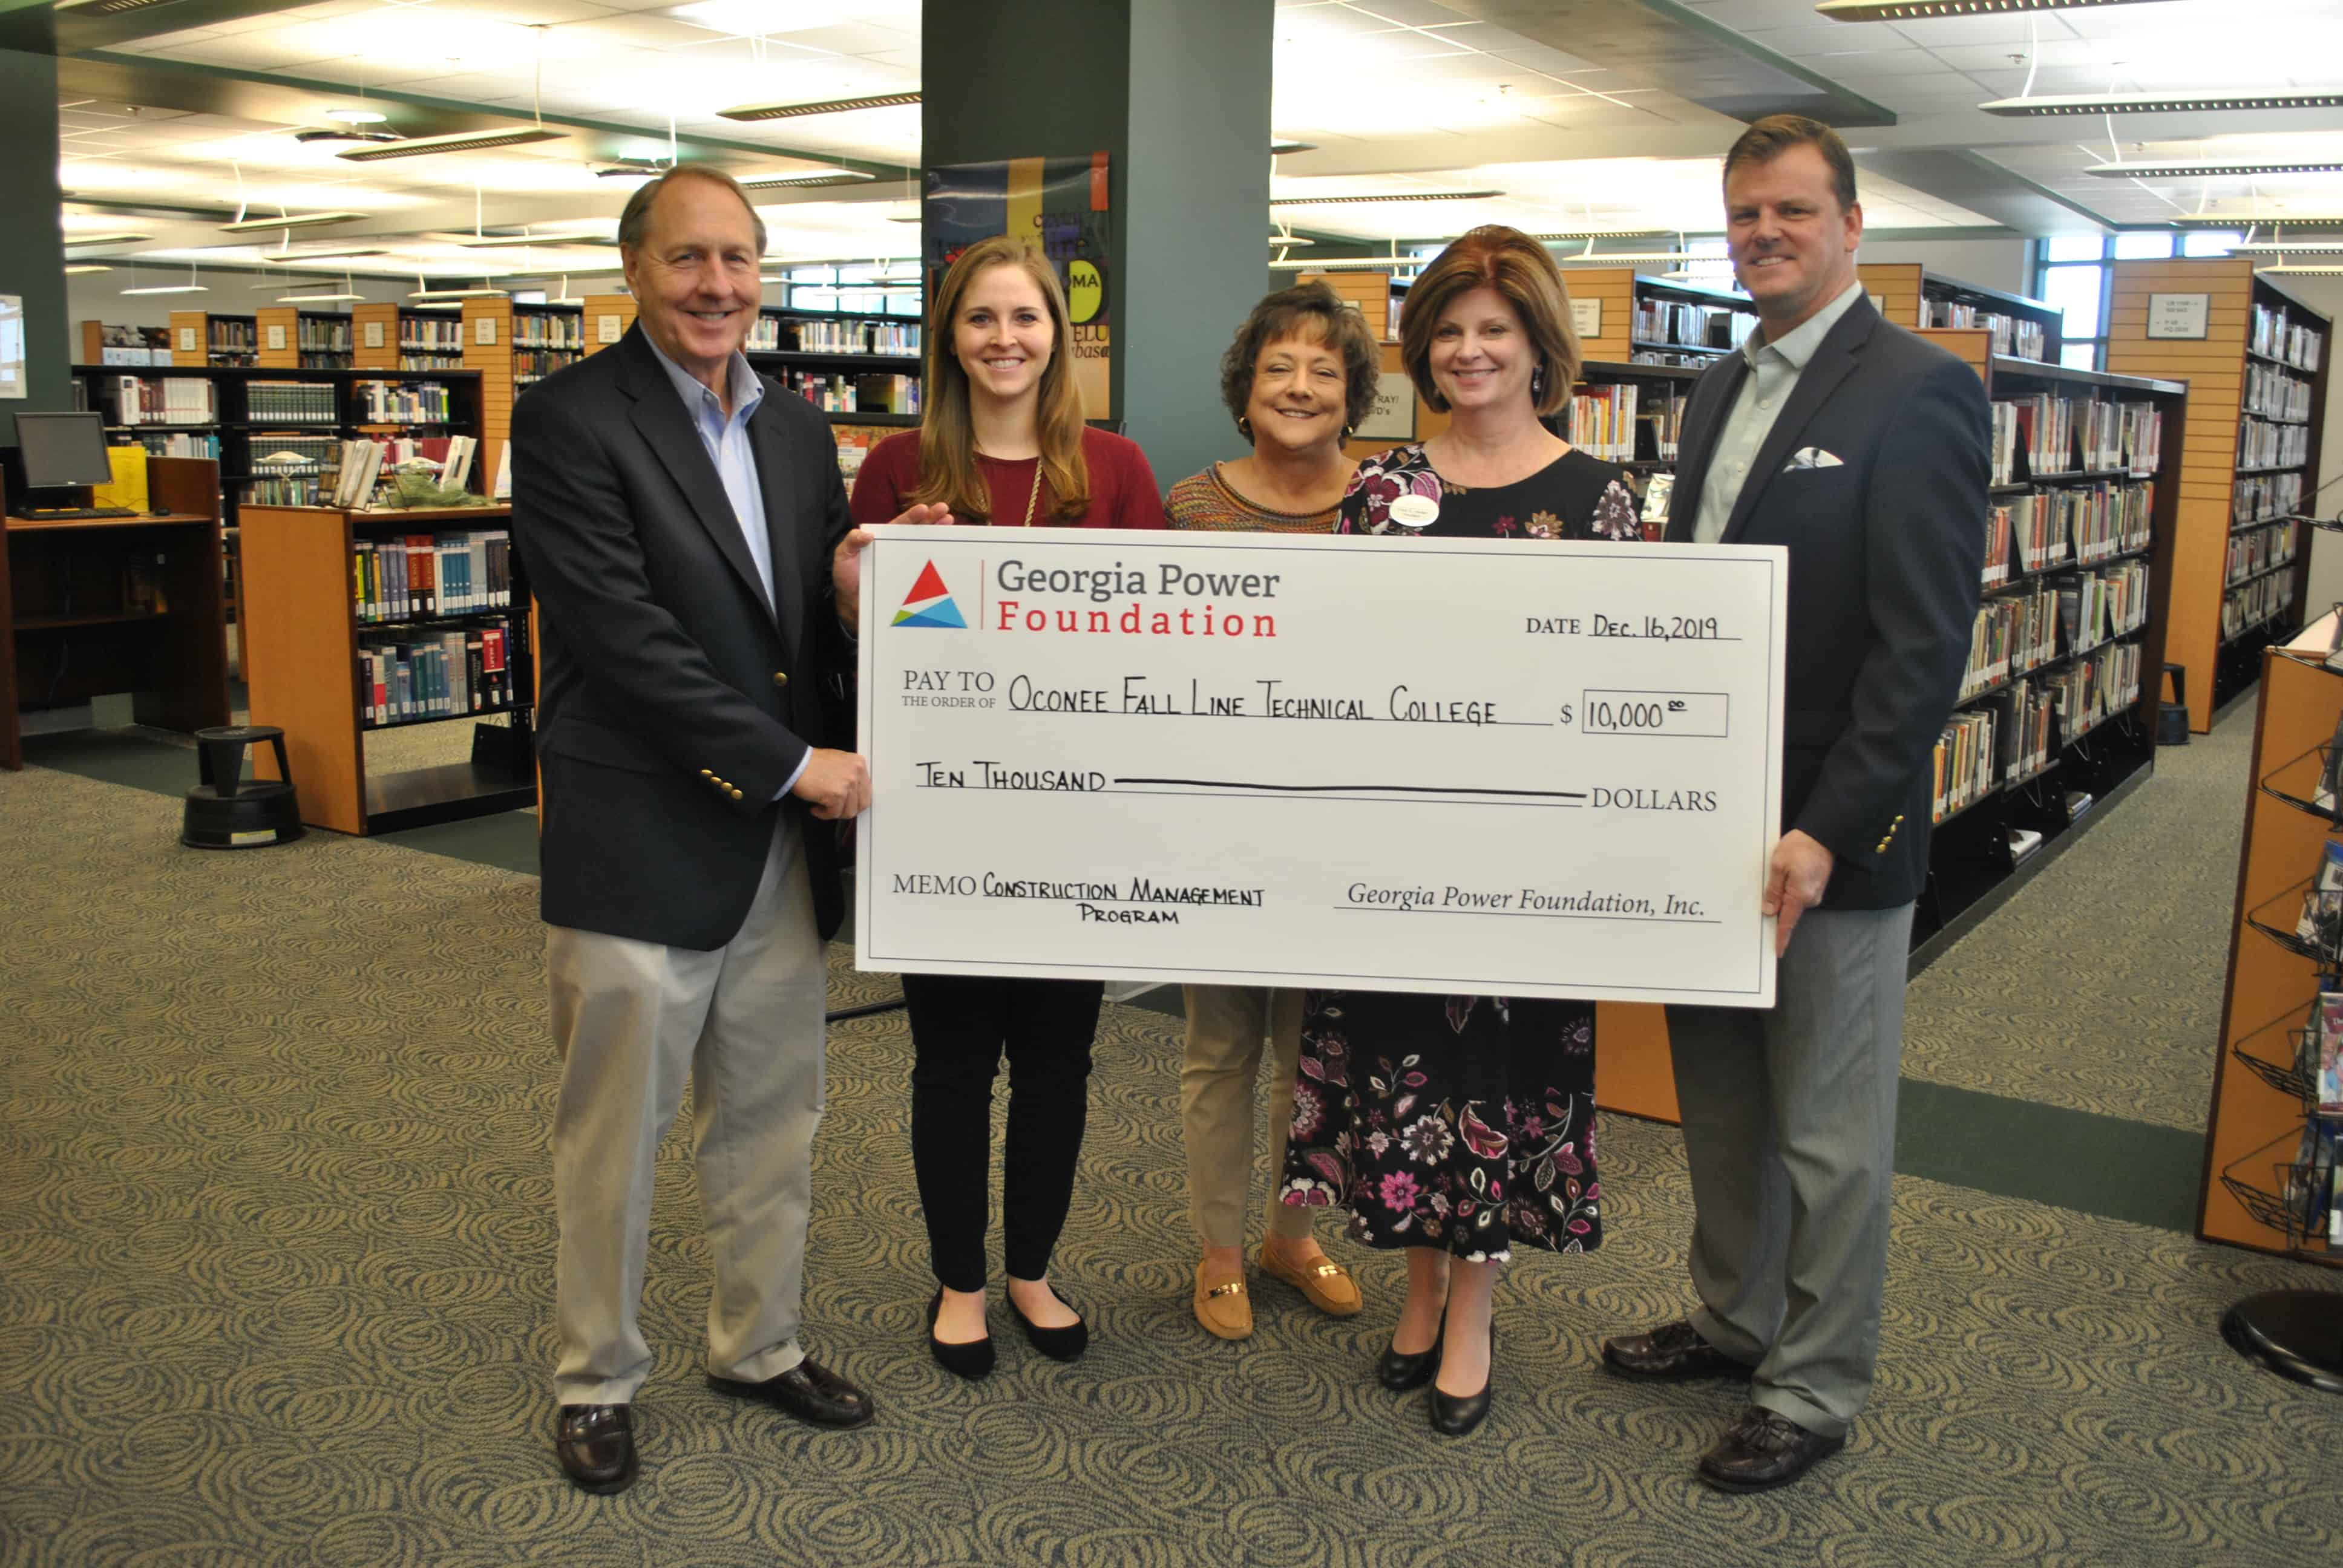 The Georgia Power Company recently donated $10,000 to OFTC's South Foundation. Pictured, L-R: Jay Studstill, Georgia Power Company Southwest Region Area Manager; Kathryn Willcox, President of OFTC's South Foundation; Kathy Aaron, OFTC's Director of Institutional Advancement; Erica Harden, OFTC President; and Eric Smith, Georgia Power Company Southeast Region Local Manager.